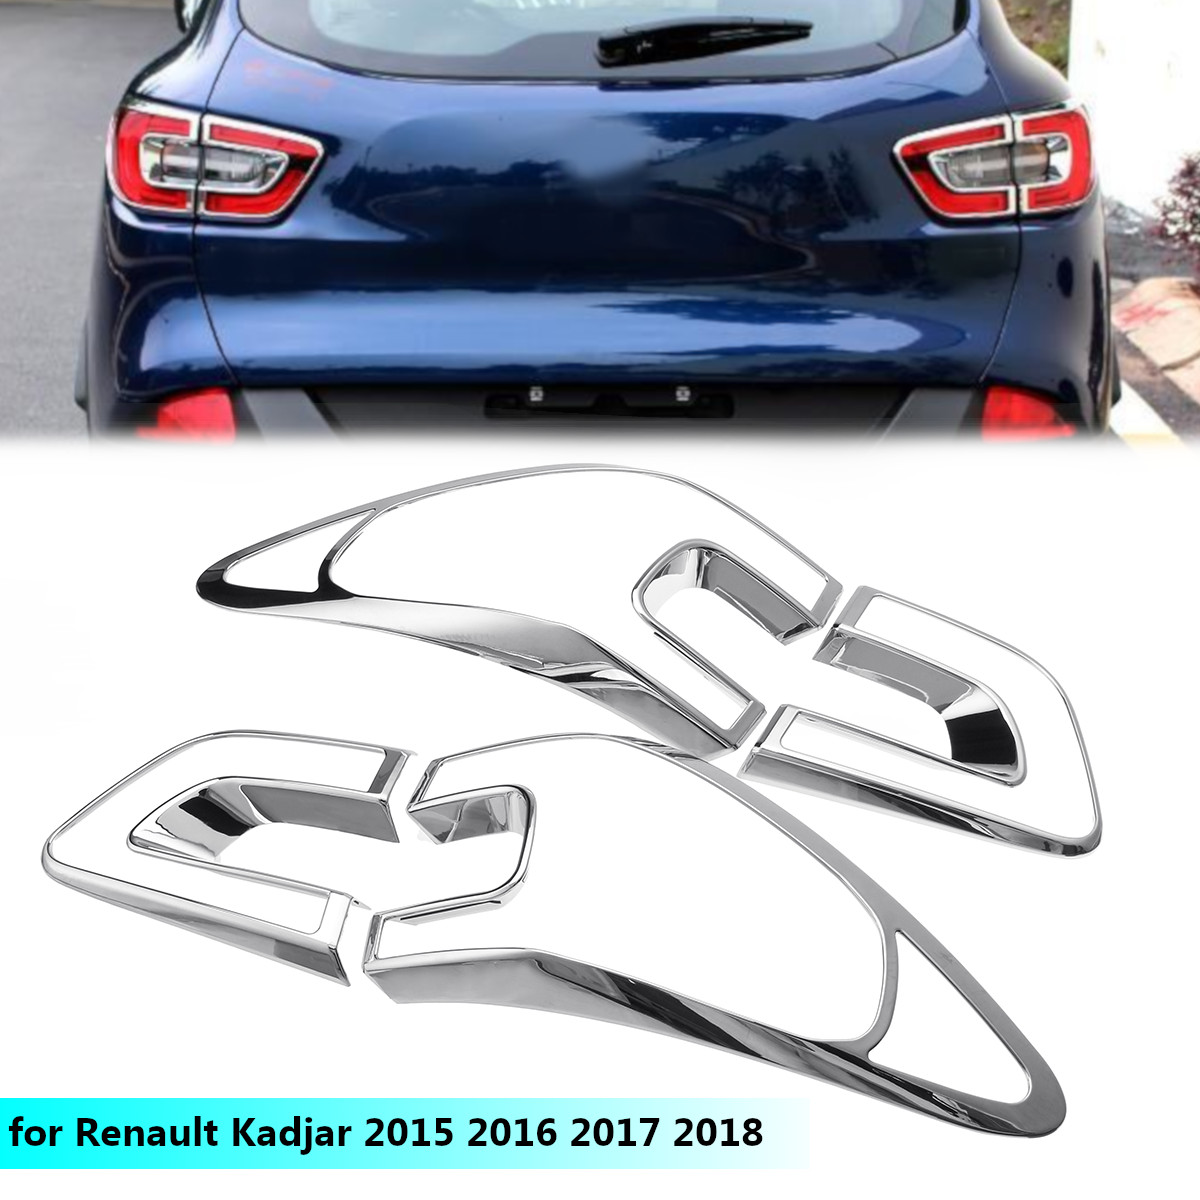 4pcs Car Tail Light Cover Trim Frame ABS Chrome Decoration for Renault Kadjar 2015 2016 2017 2018 Chromium Styling Accessories4pcs Car Tail Light Cover Trim Frame ABS Chrome Decoration for Renault Kadjar 2015 2016 2017 2018 Chromium Styling Accessories